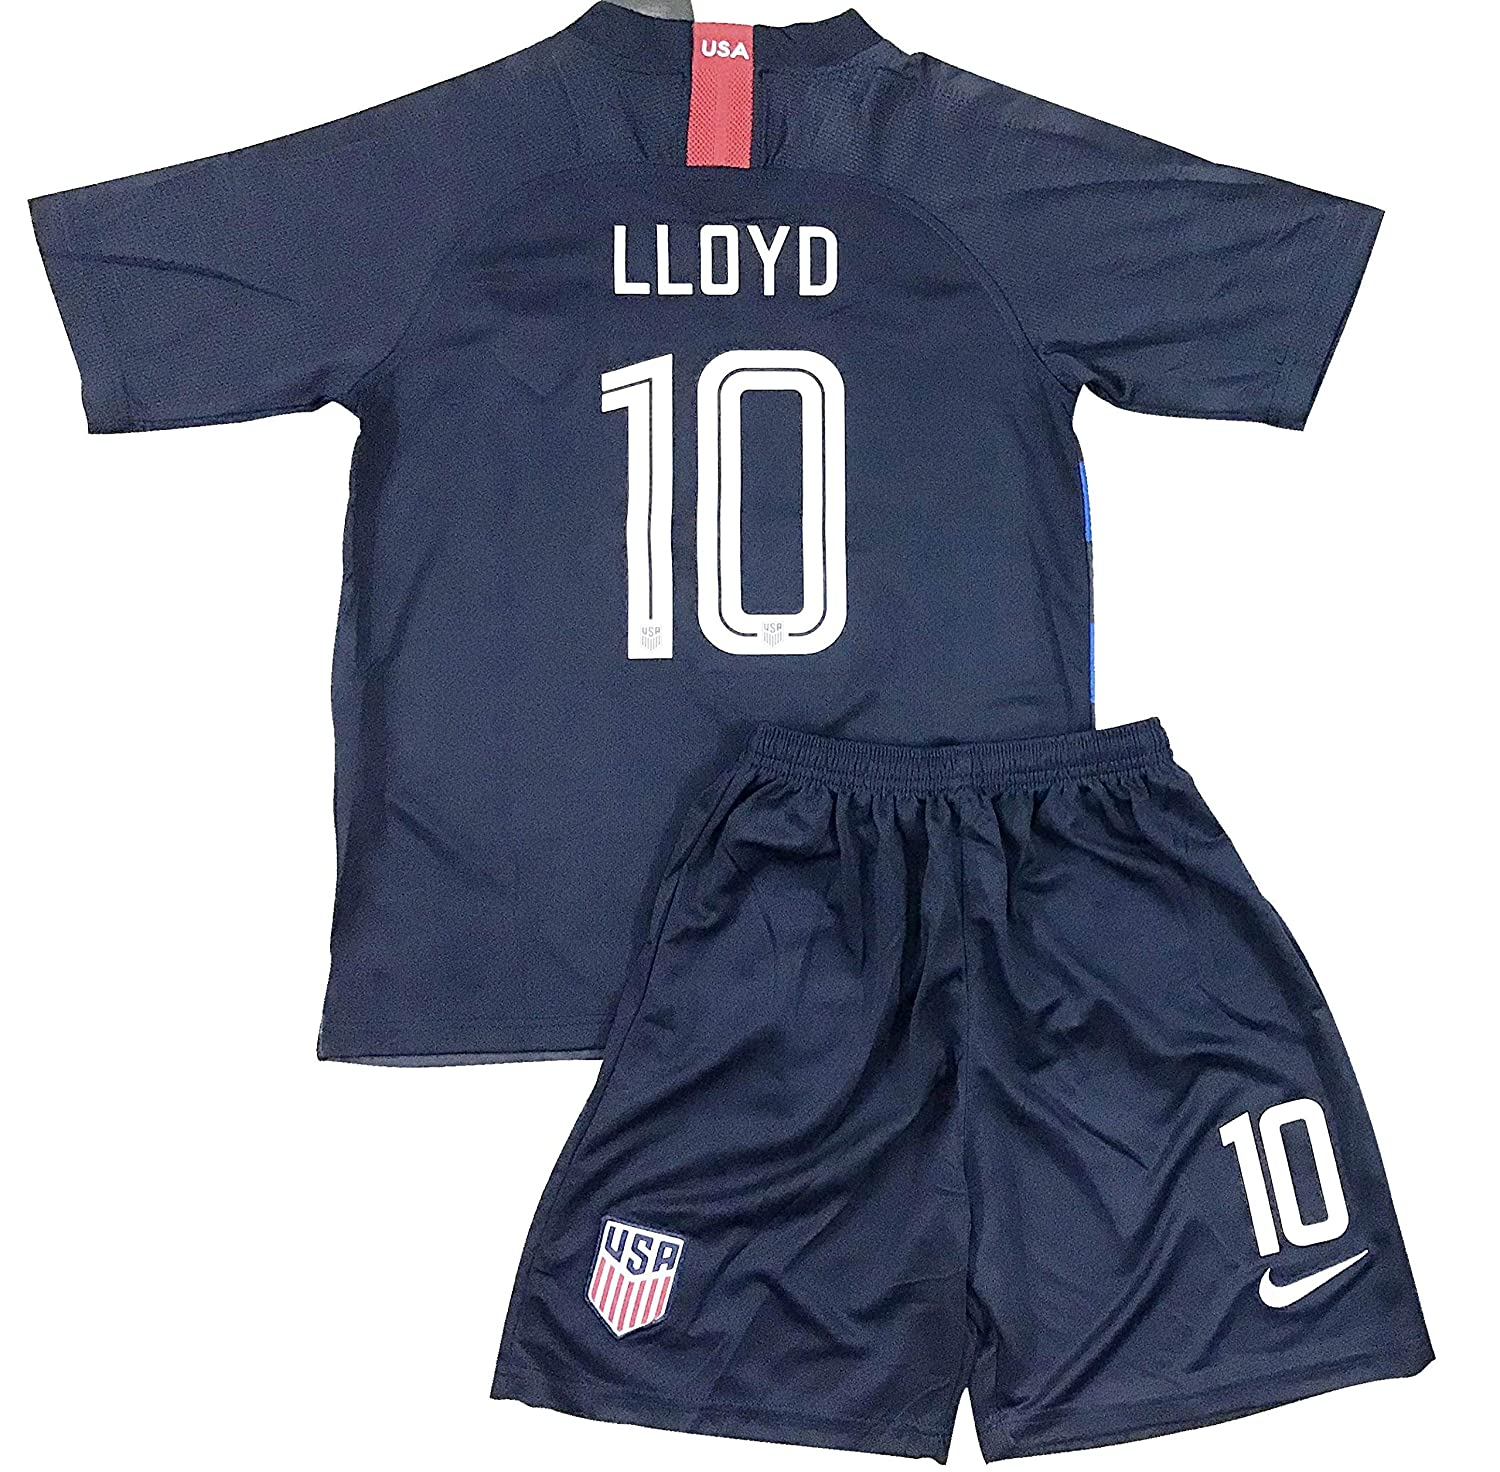 new style 142f0 7743b New 2018-2019 Carli Lloyd #10 USA National Team Away Soccer Jersey & Shorts  for Kids/Youths